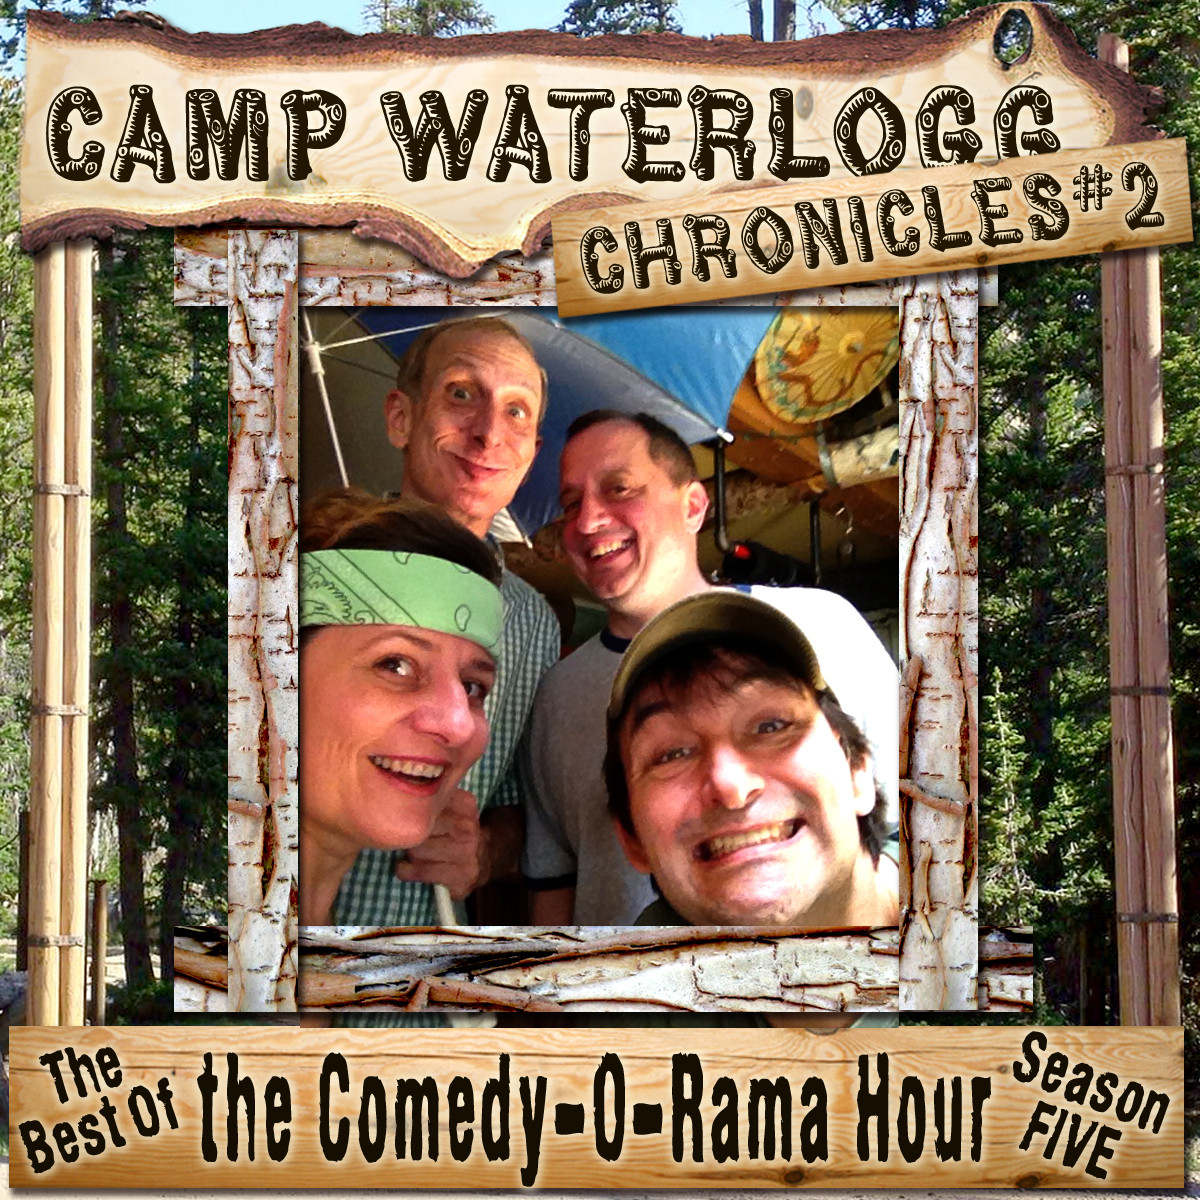 Printable The Camp Waterlogg Chronicles 2: The Best of The Comedy-O-Rama Hour Season 5 Audiobook Cover Art